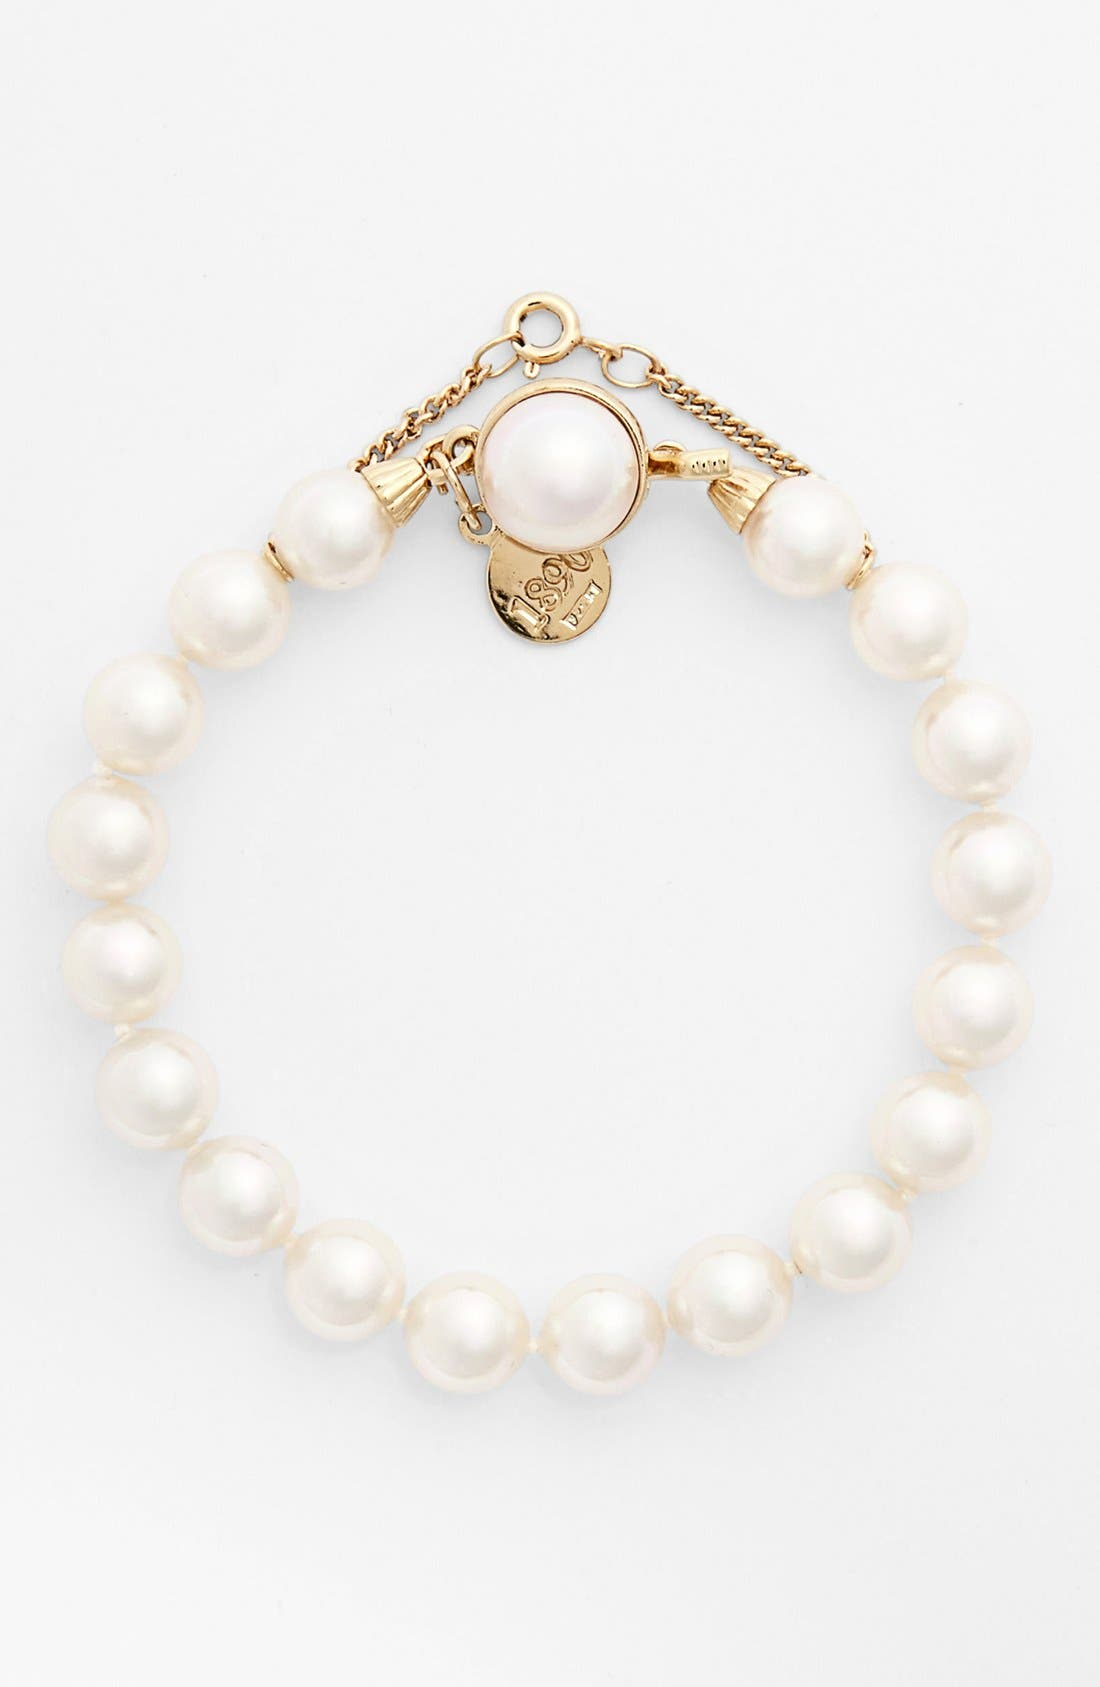 8mm Single Row Pearl Bracelet,                         Main,                         color, White/ Gold